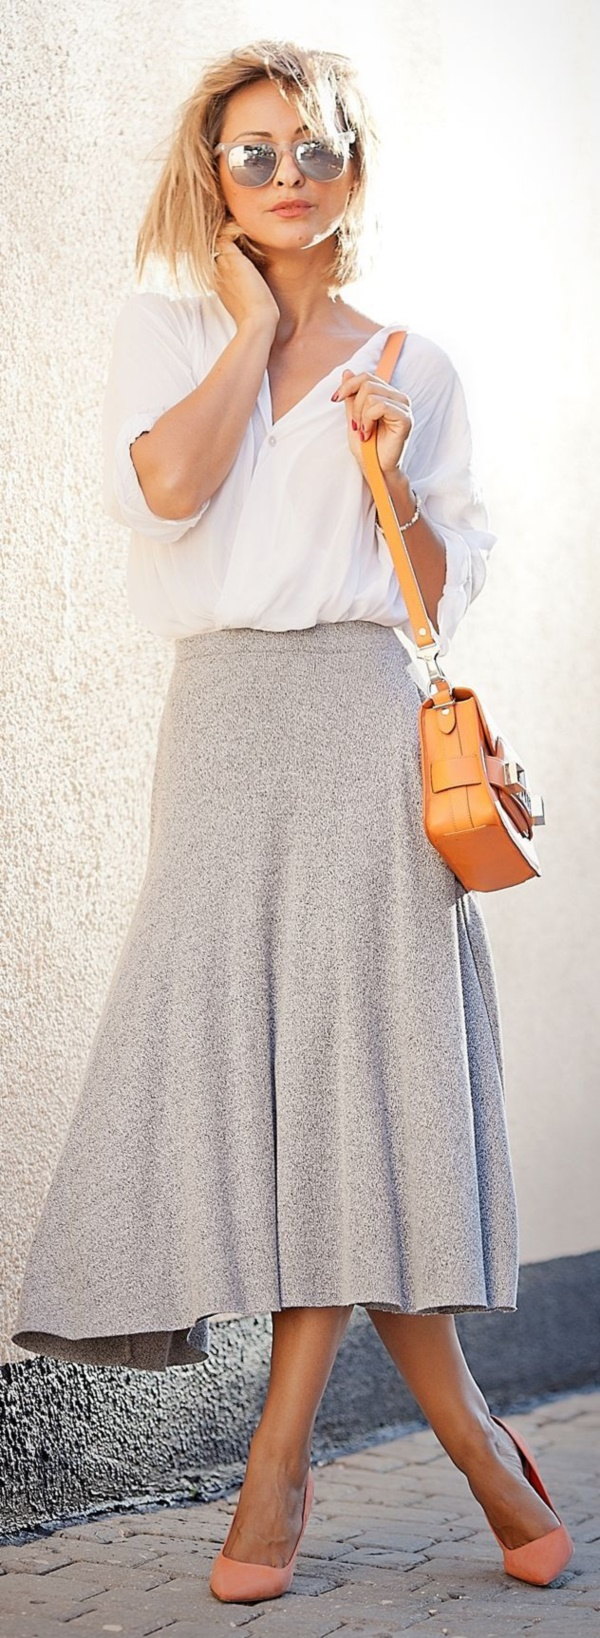 grey skirt outfit (64)